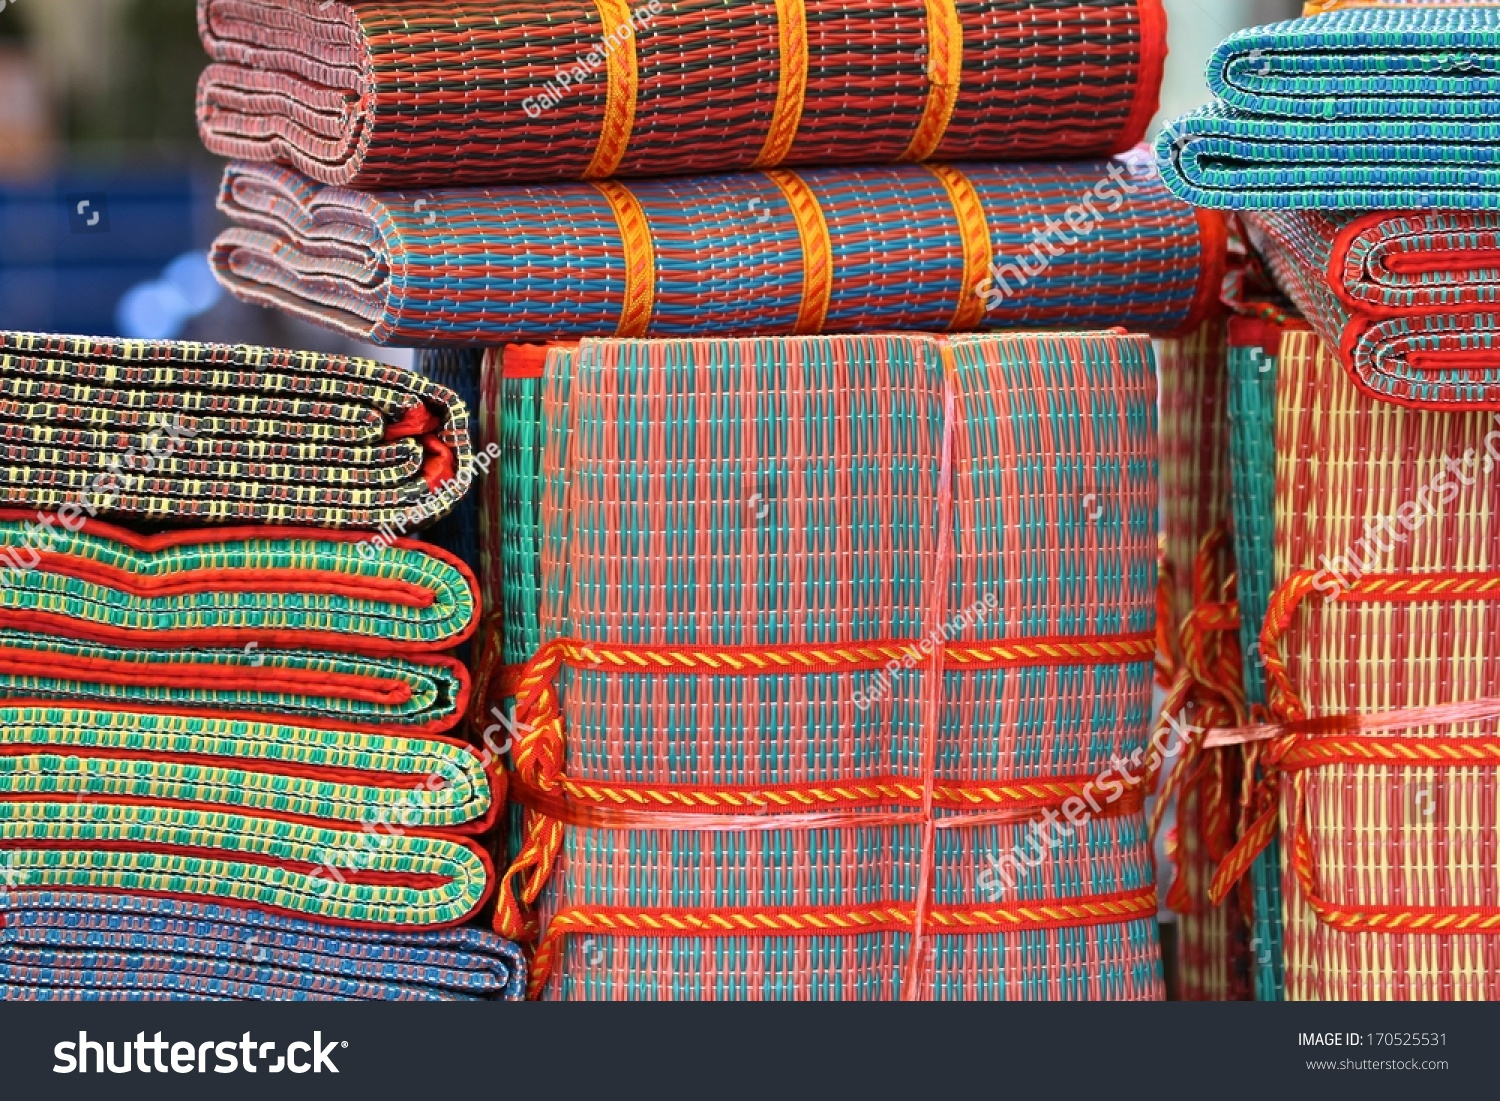 Floor mats sale - Generic Colorful Floor Mats On Display For Sale In Siem Reap Cambodia